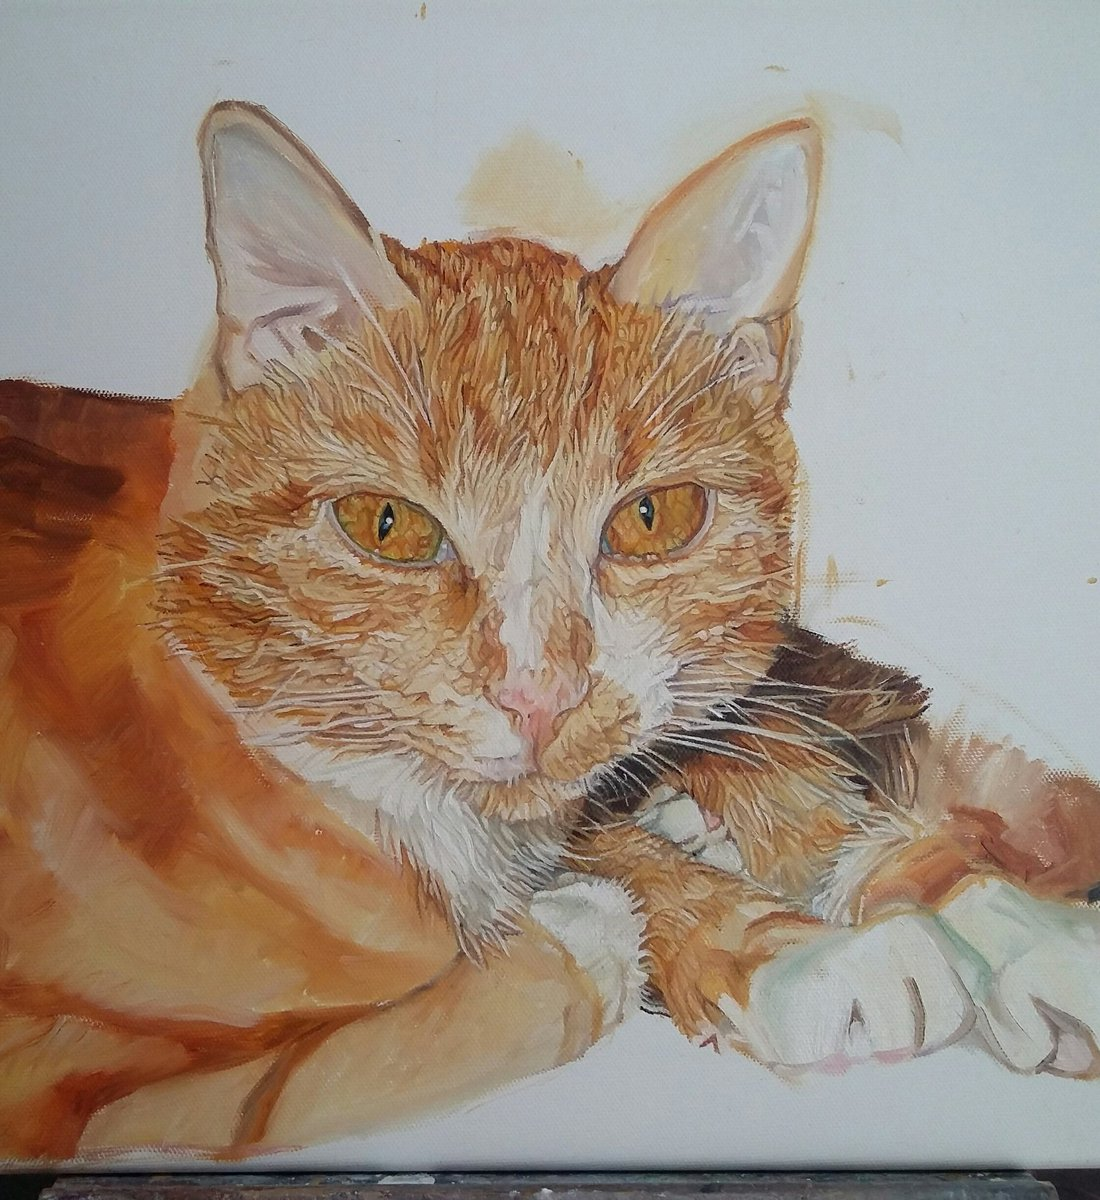 Getting there slowly but surely with thus commission #cat #art #portrait #commission #orderbookopen #QueenOf #animalart #womaninbiz #uksopro<br>http://pic.twitter.com/Bey6UBEV0G